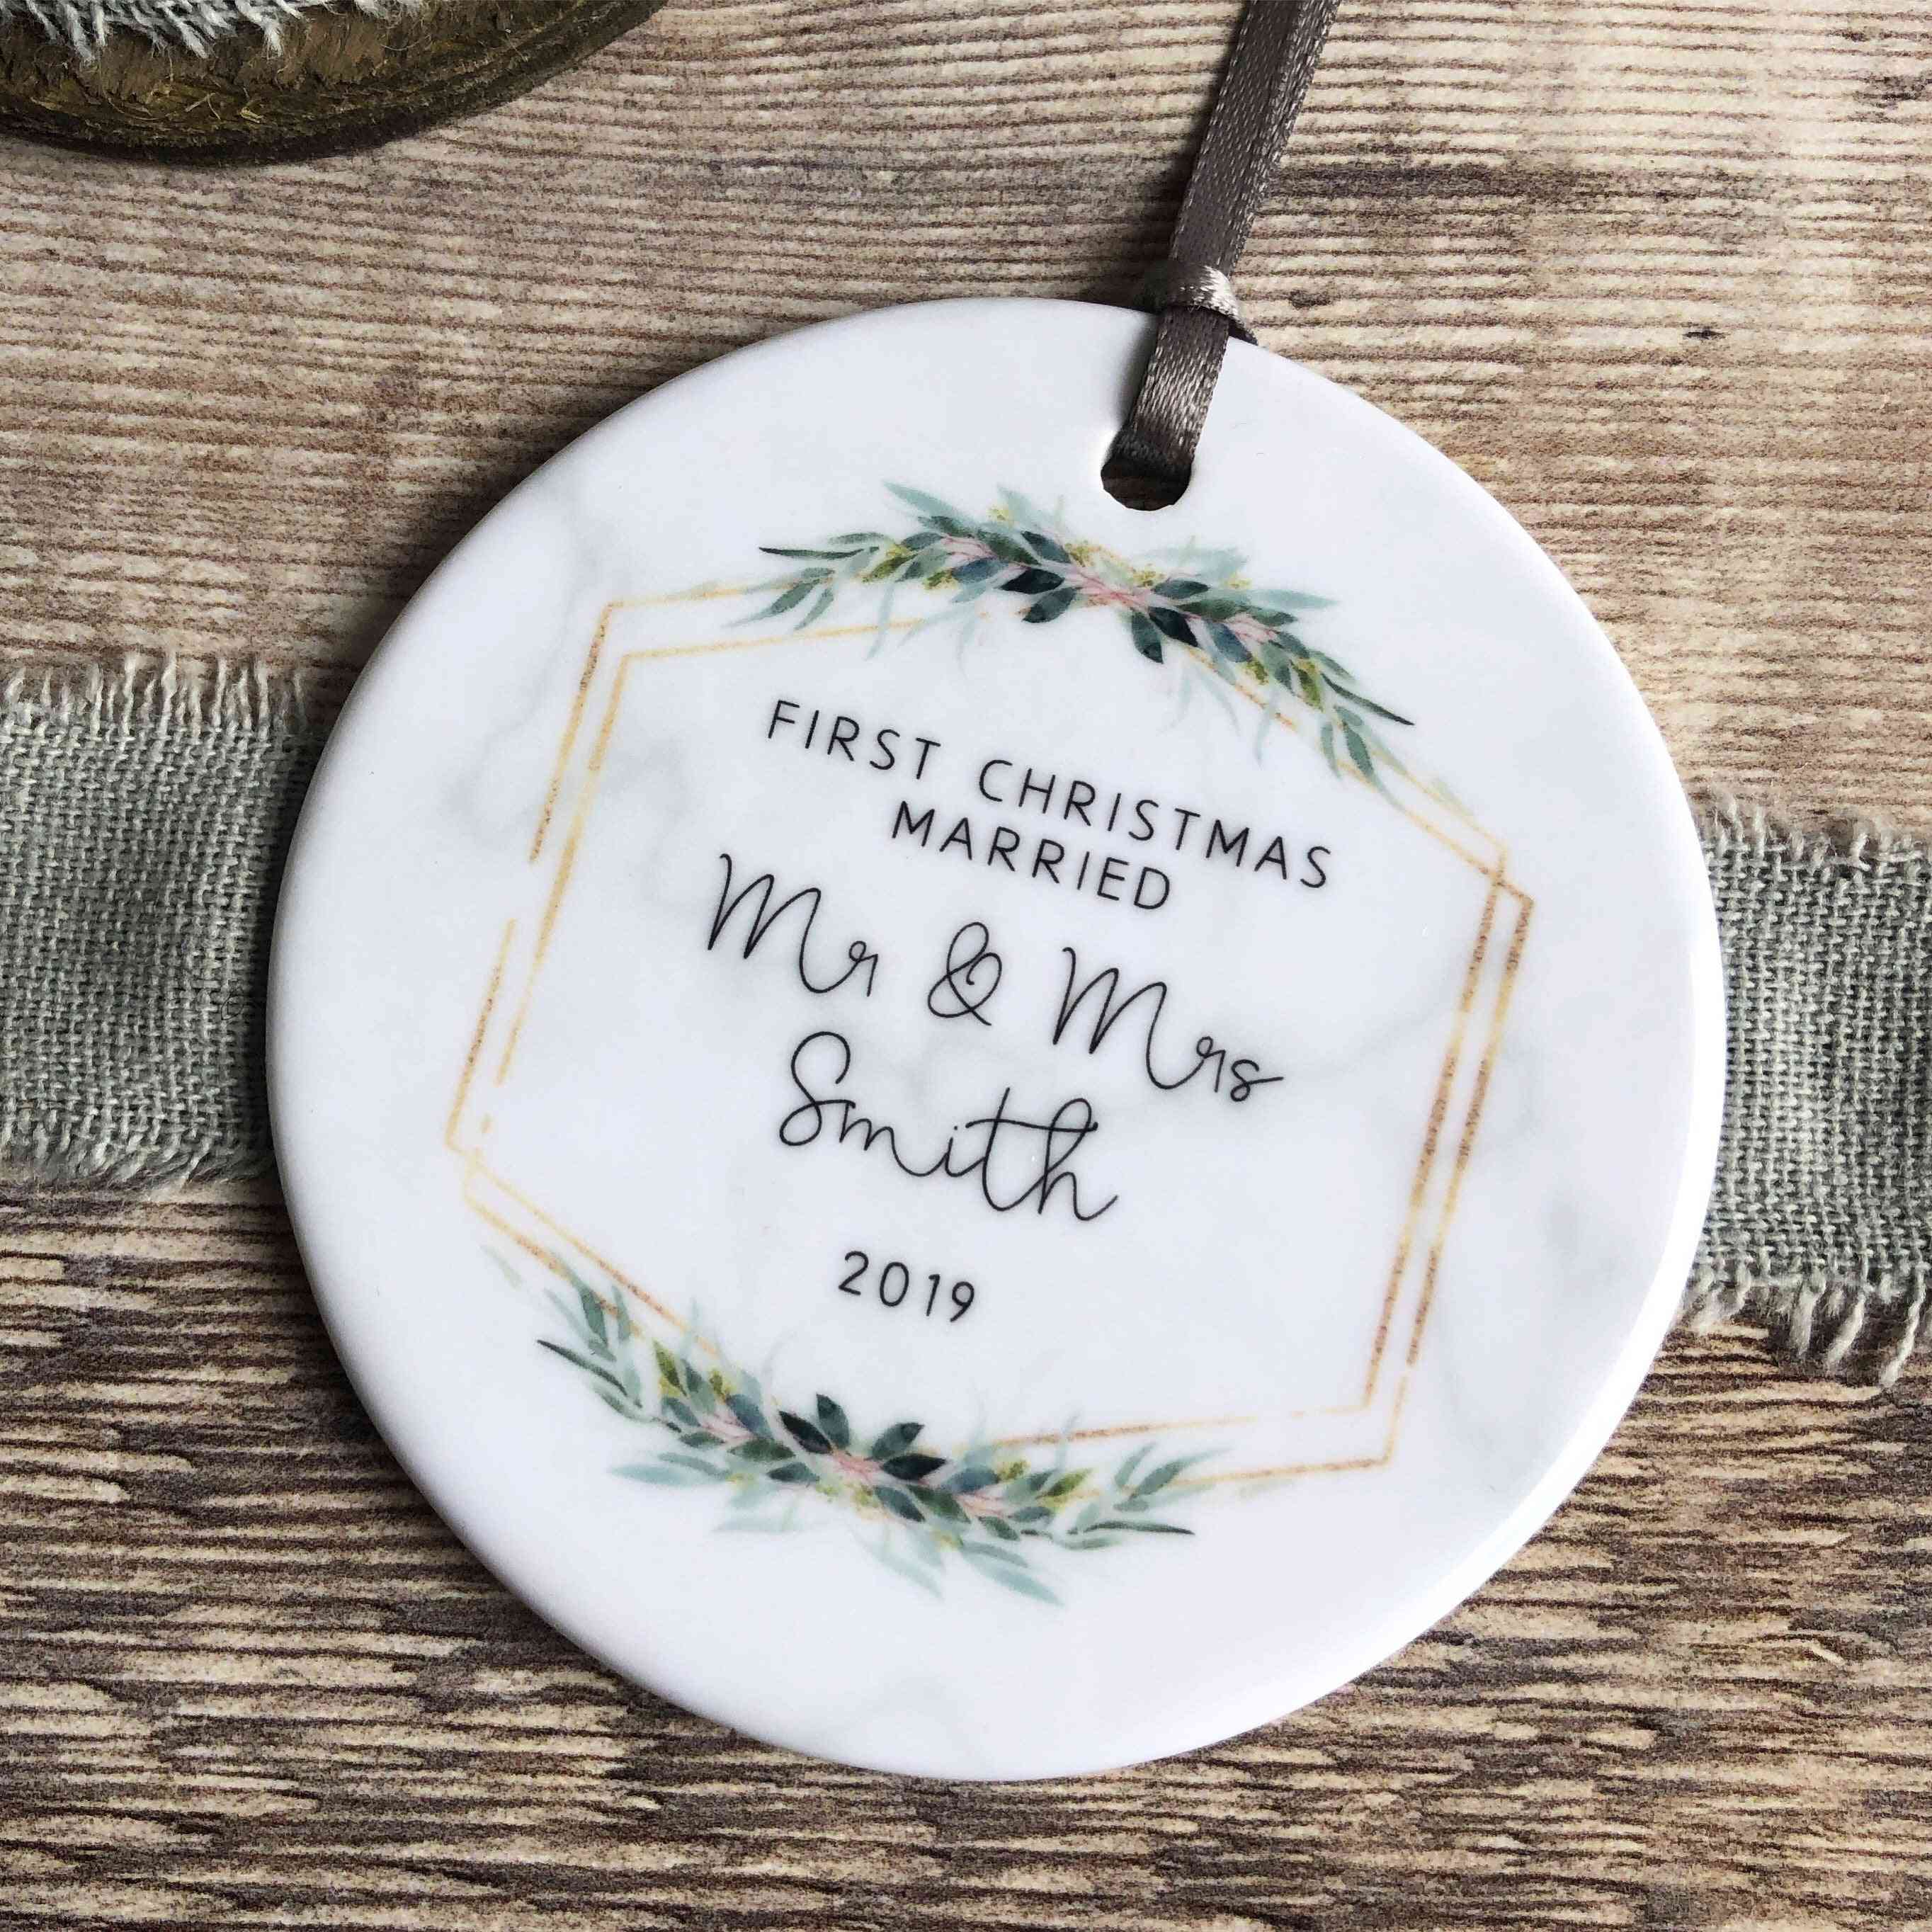 Best Wedding Gifts For Friends: The 35 Best Wedding Gifts Of 2020